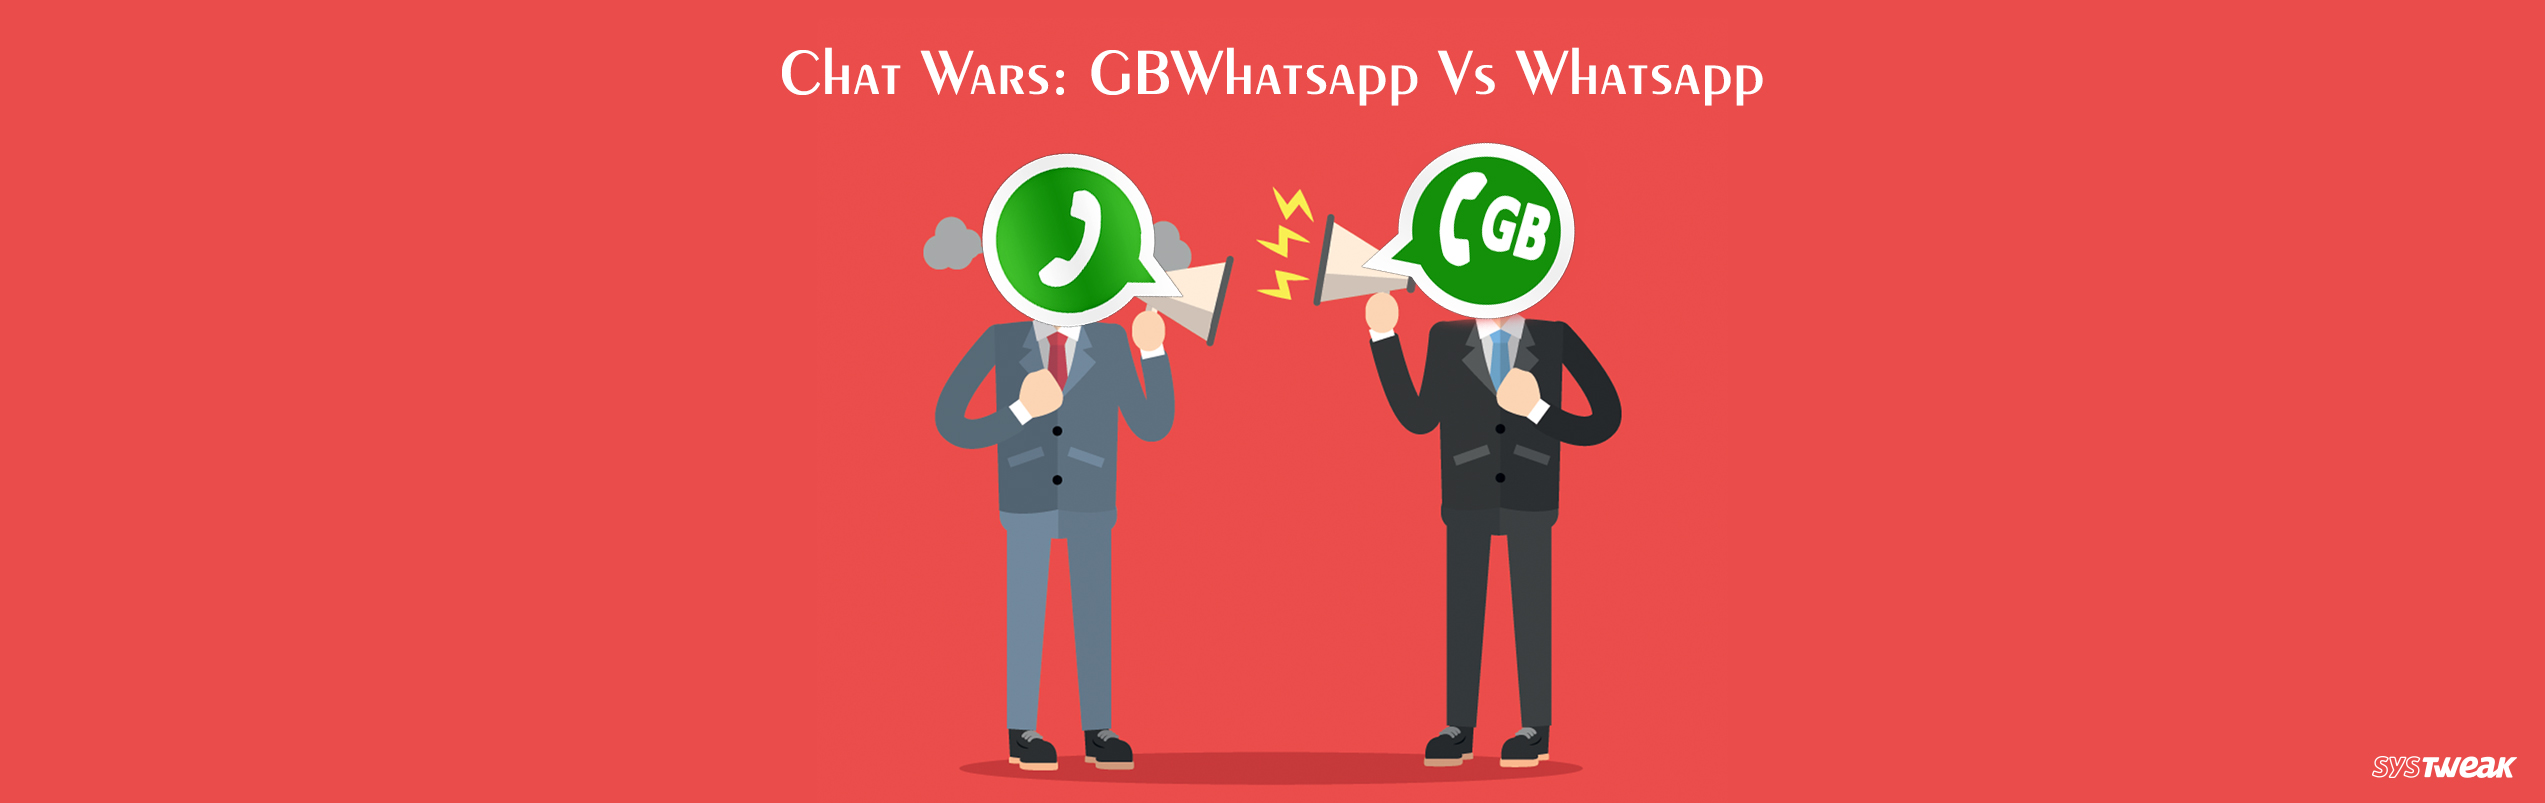 GBWhatsApp or WhatsApp? The Choice is Yours